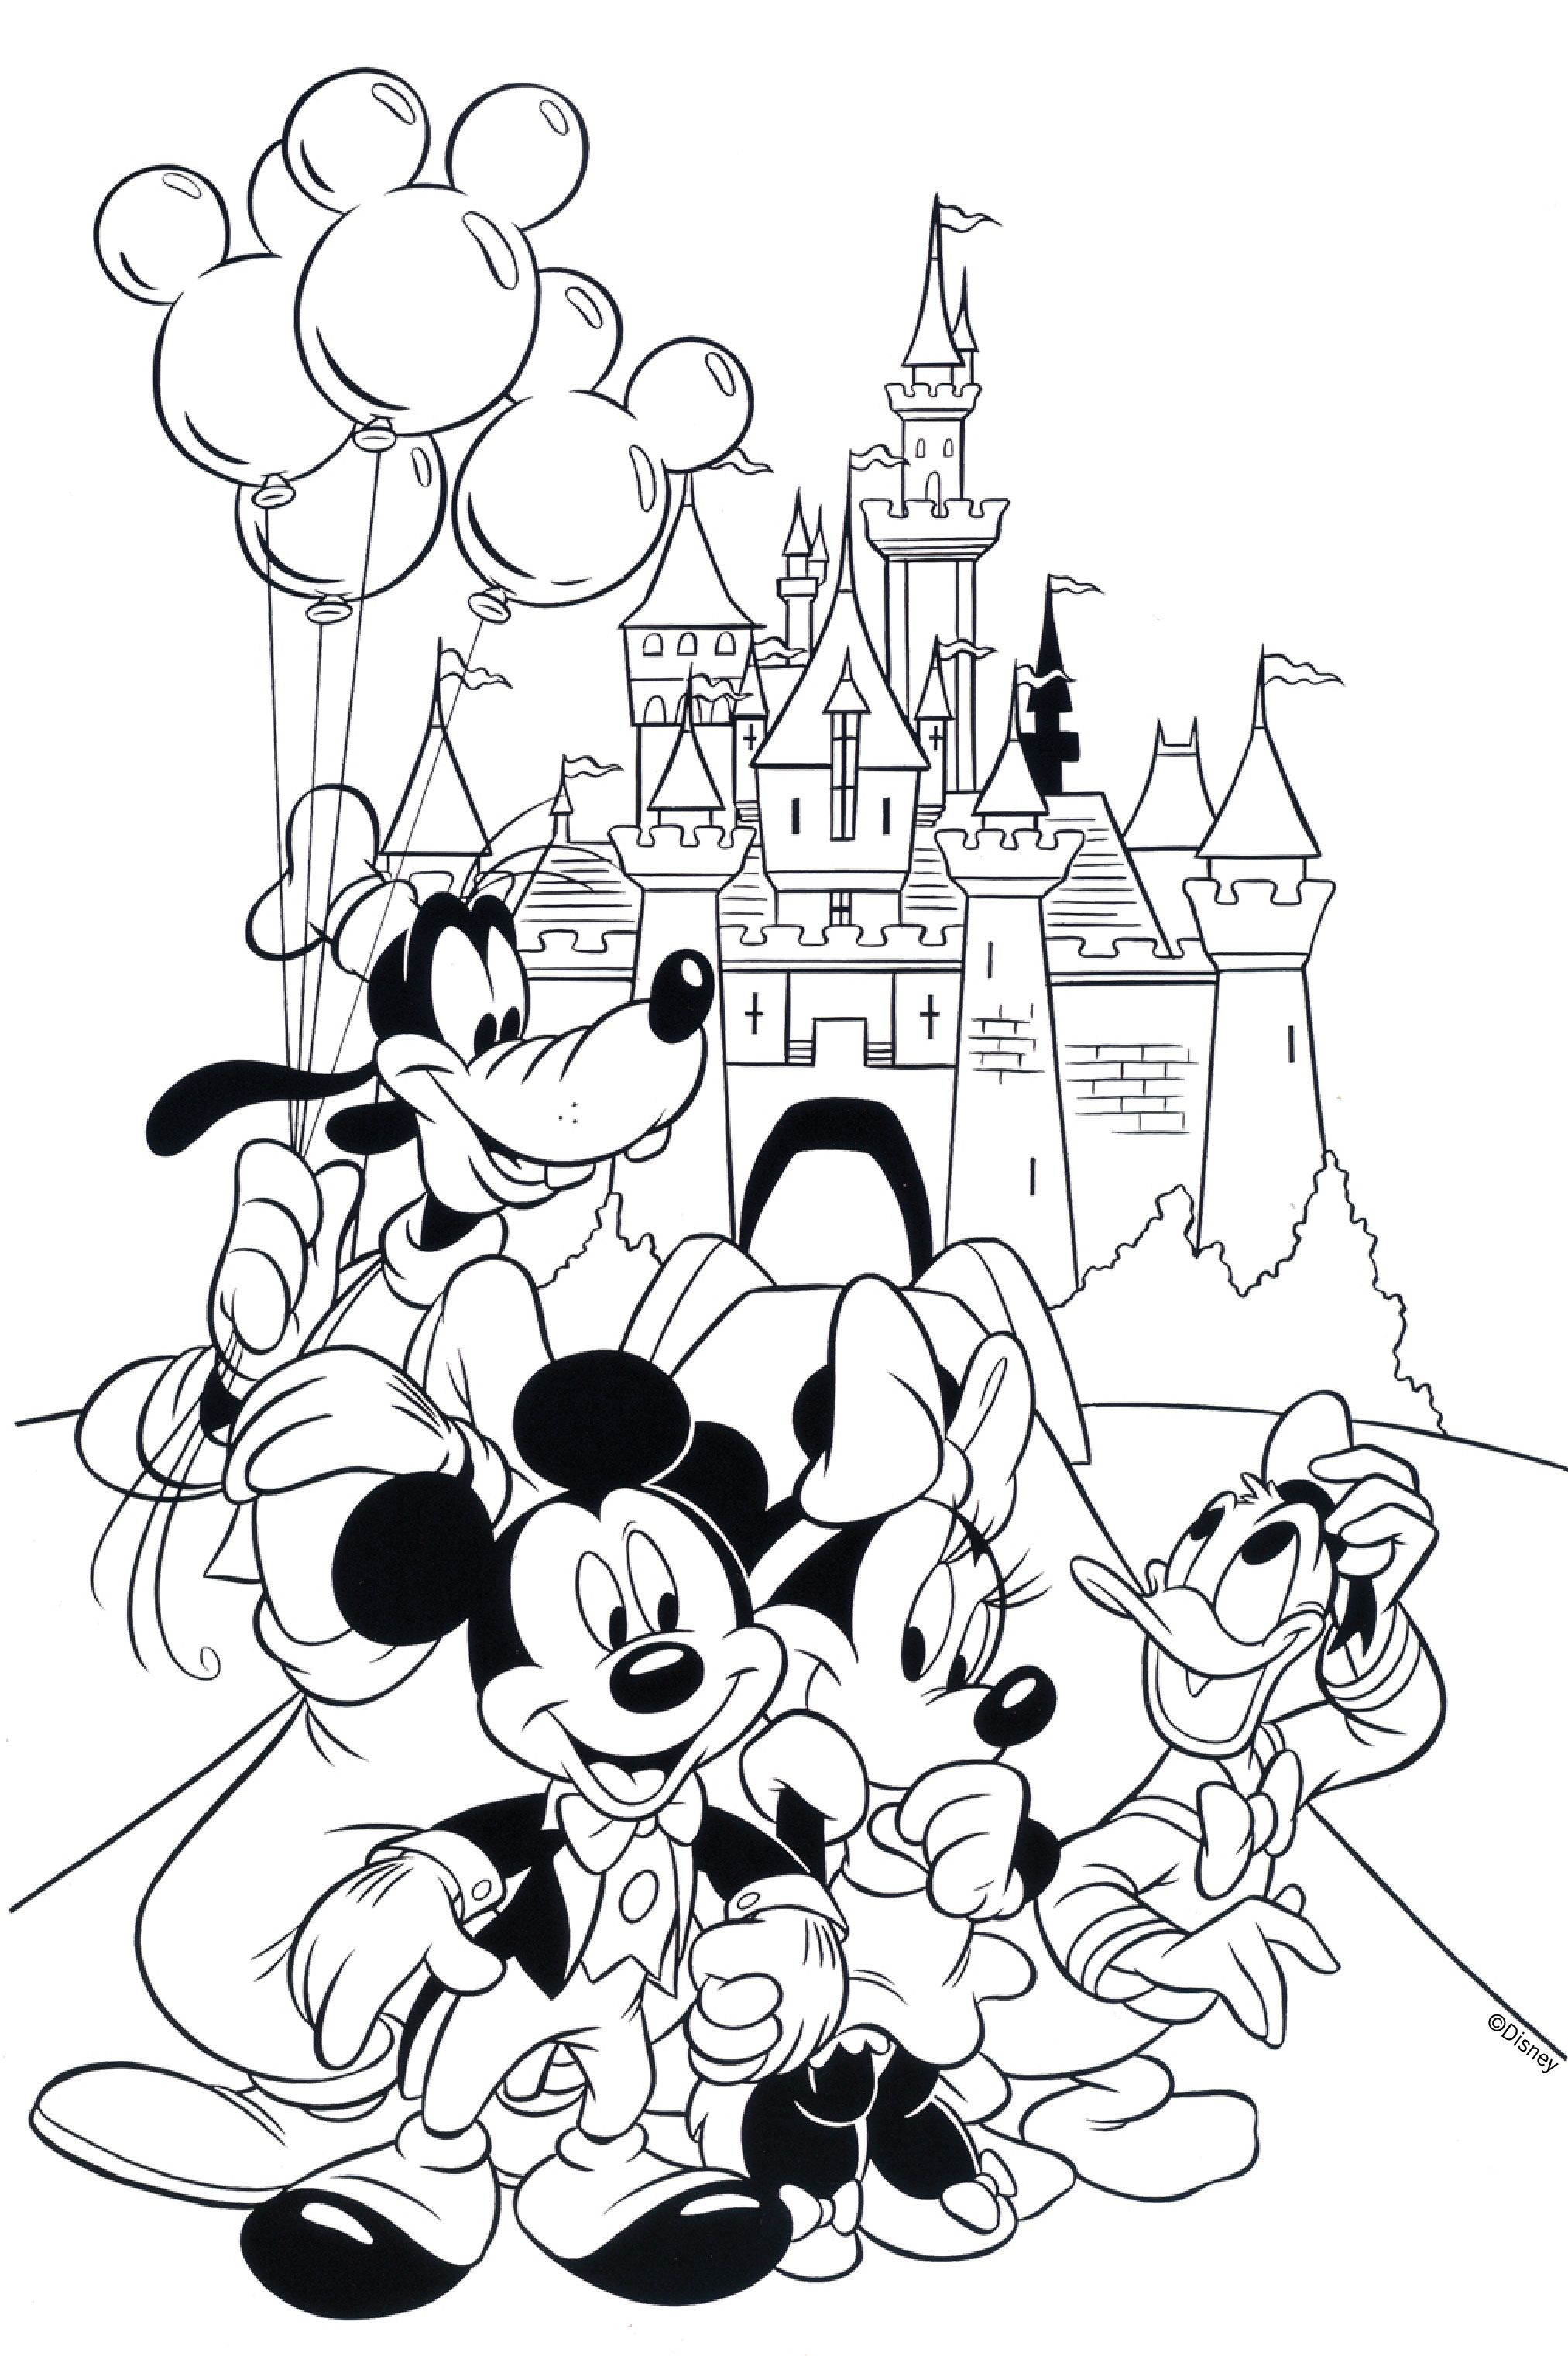 Free Disney Coloring Pages | Pinterest | Free, Coloring books and ...